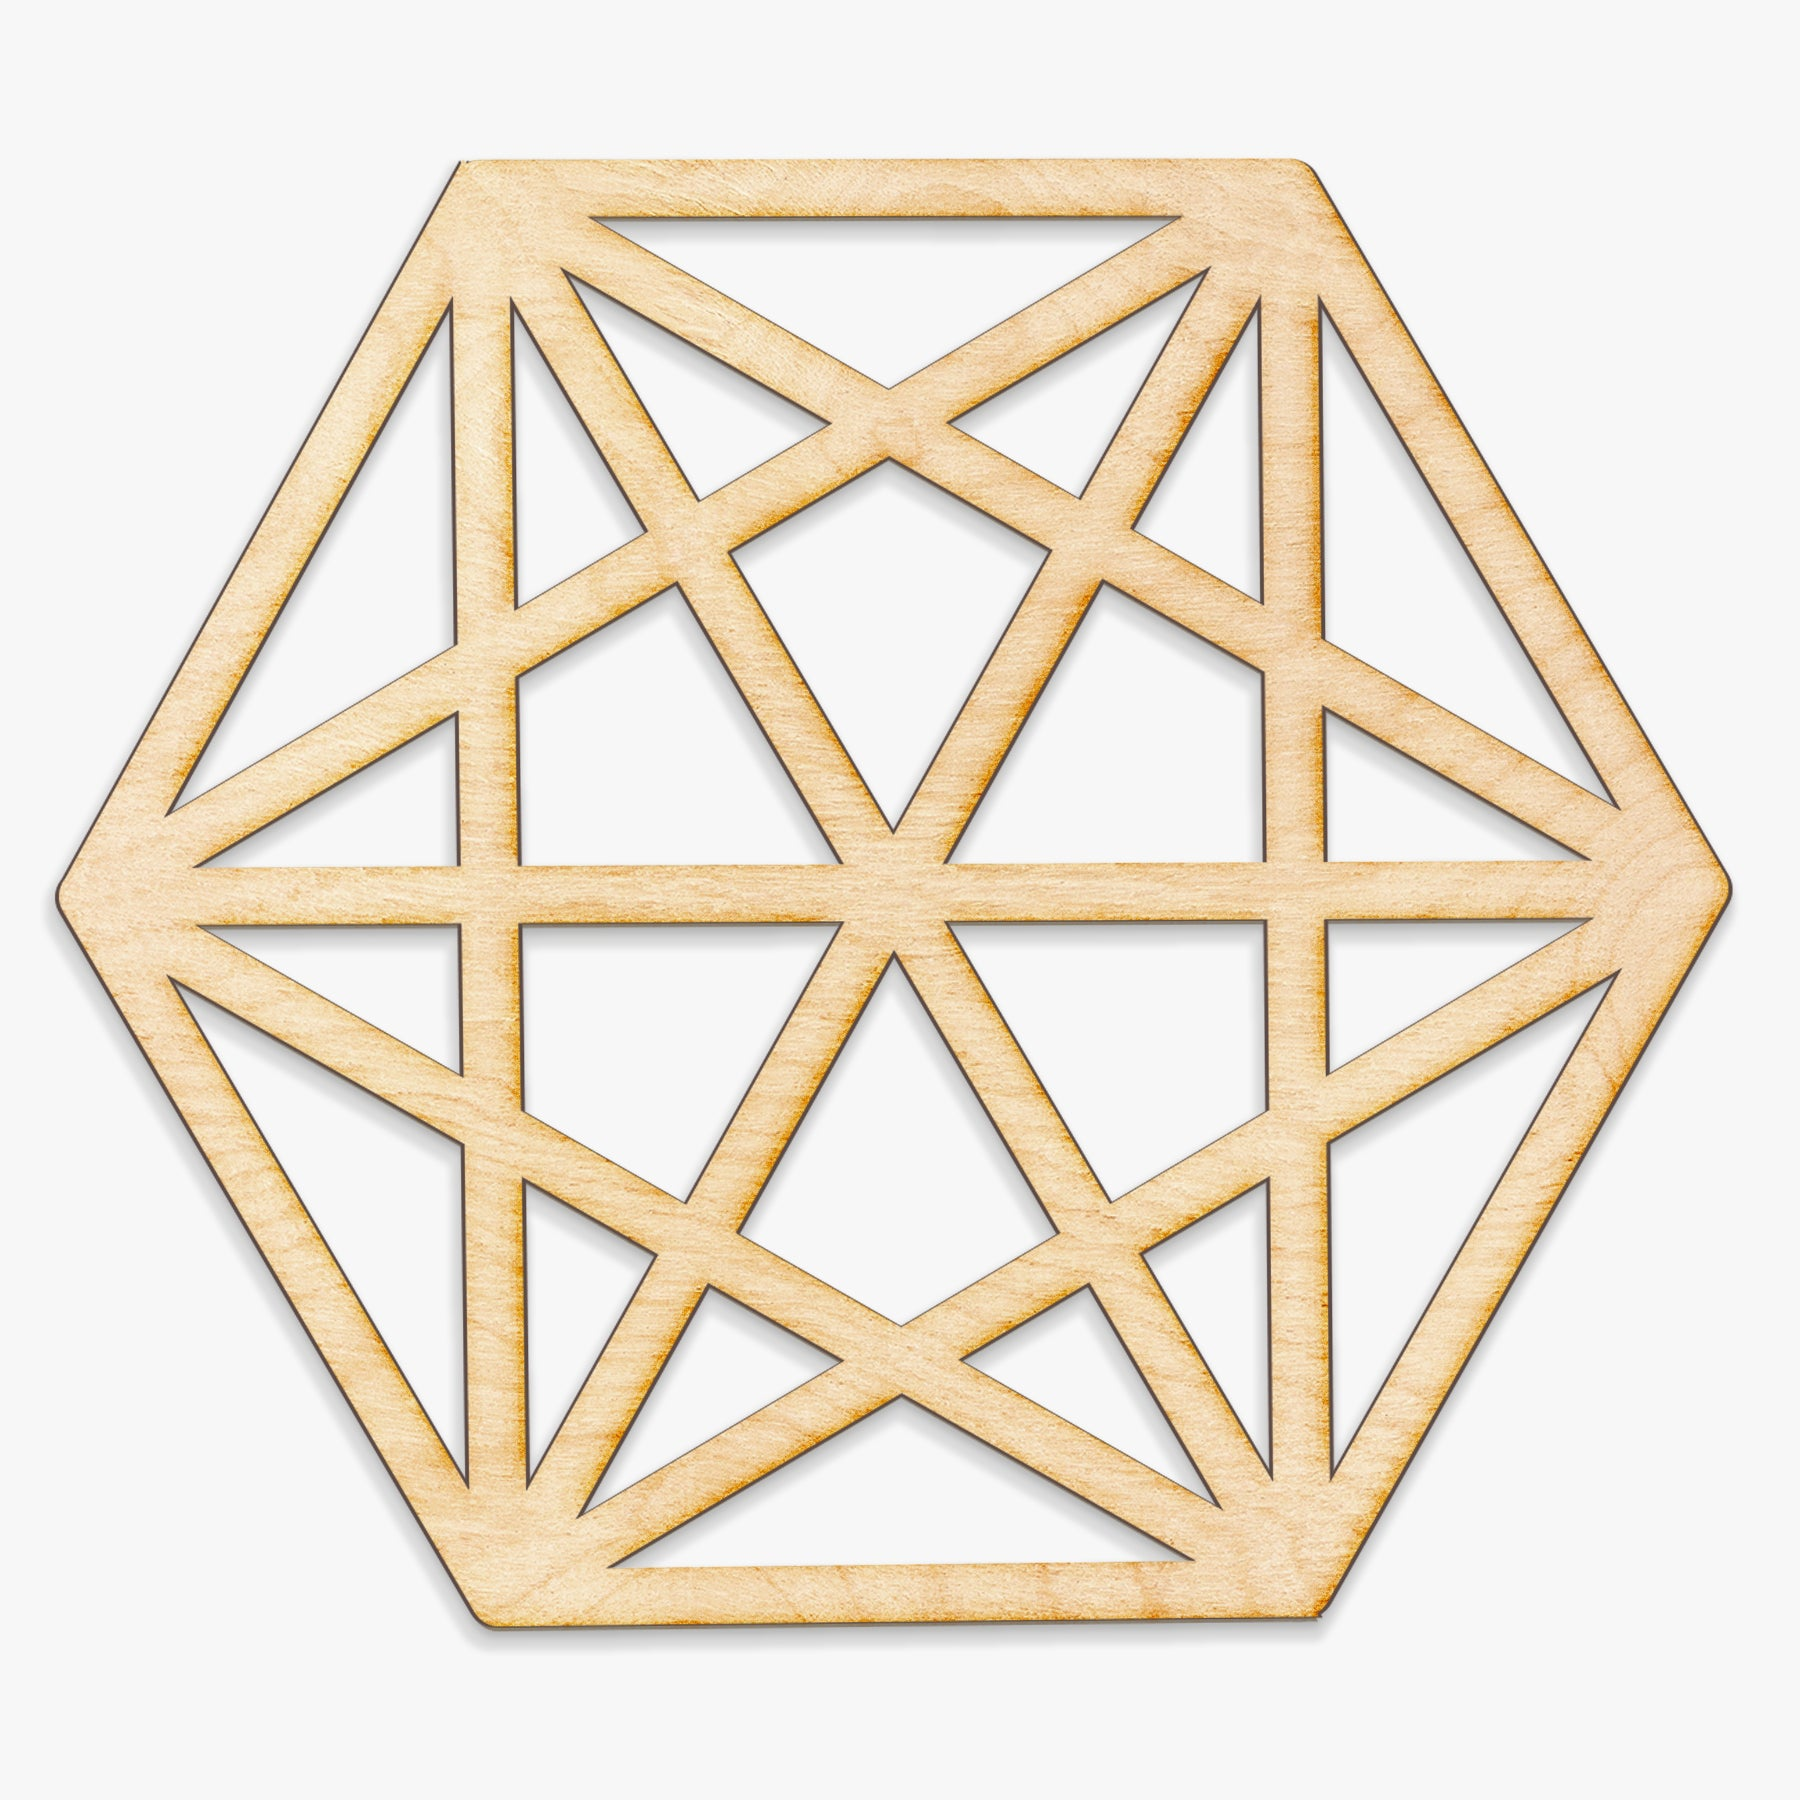 Octahedron Wood Cut